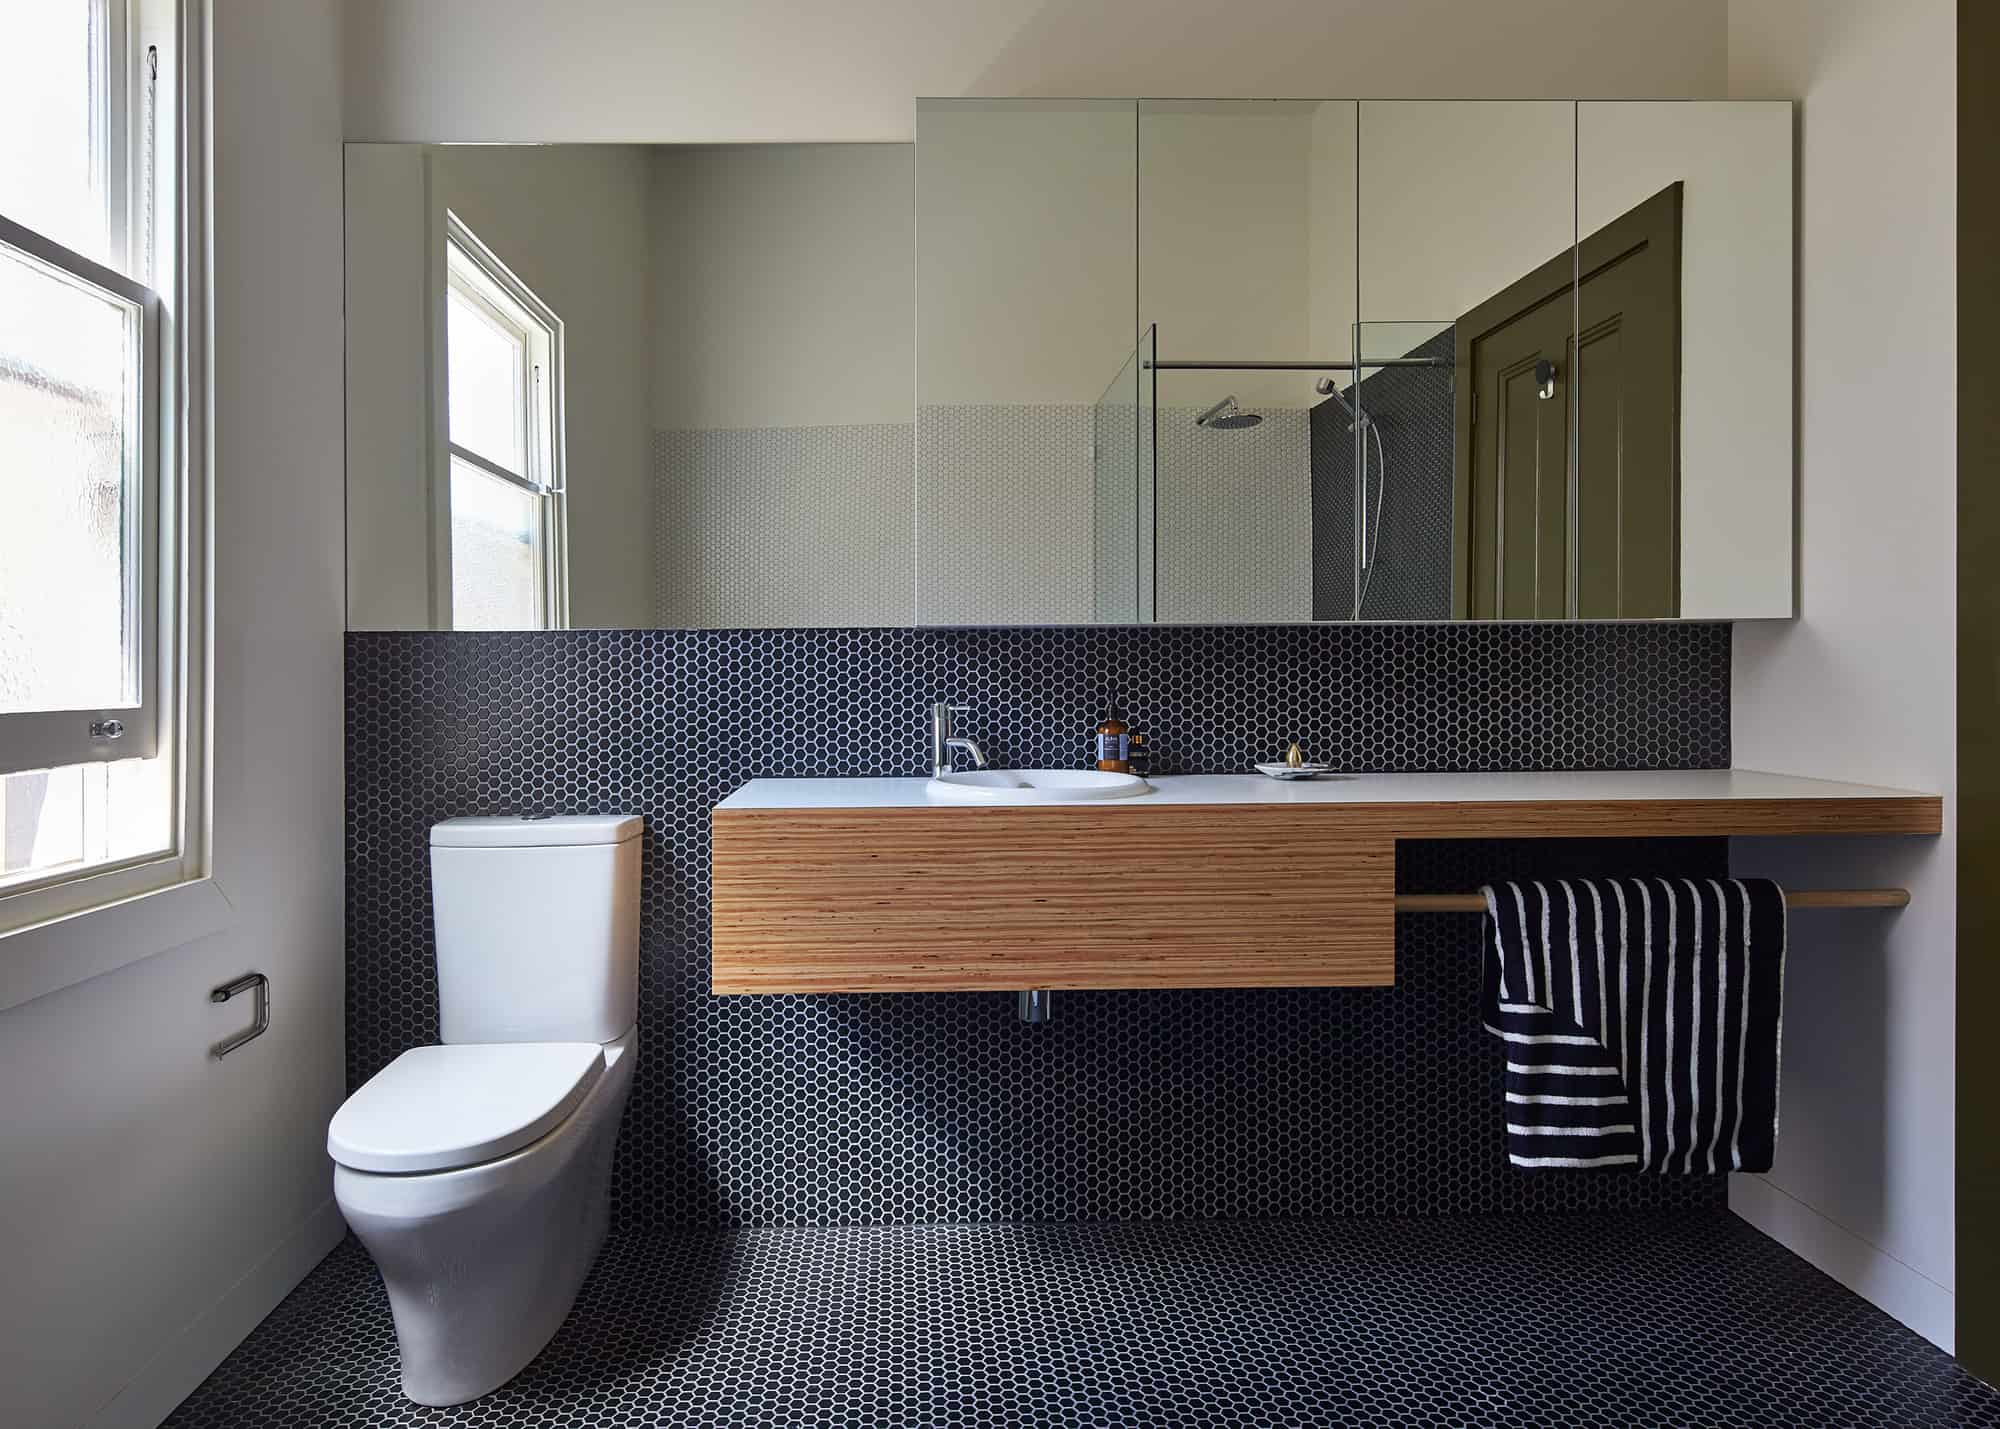 Cool Continuing the black theme the bathroom is covered in black penny tiles grouted white which picks up on the white veined black marble used on the